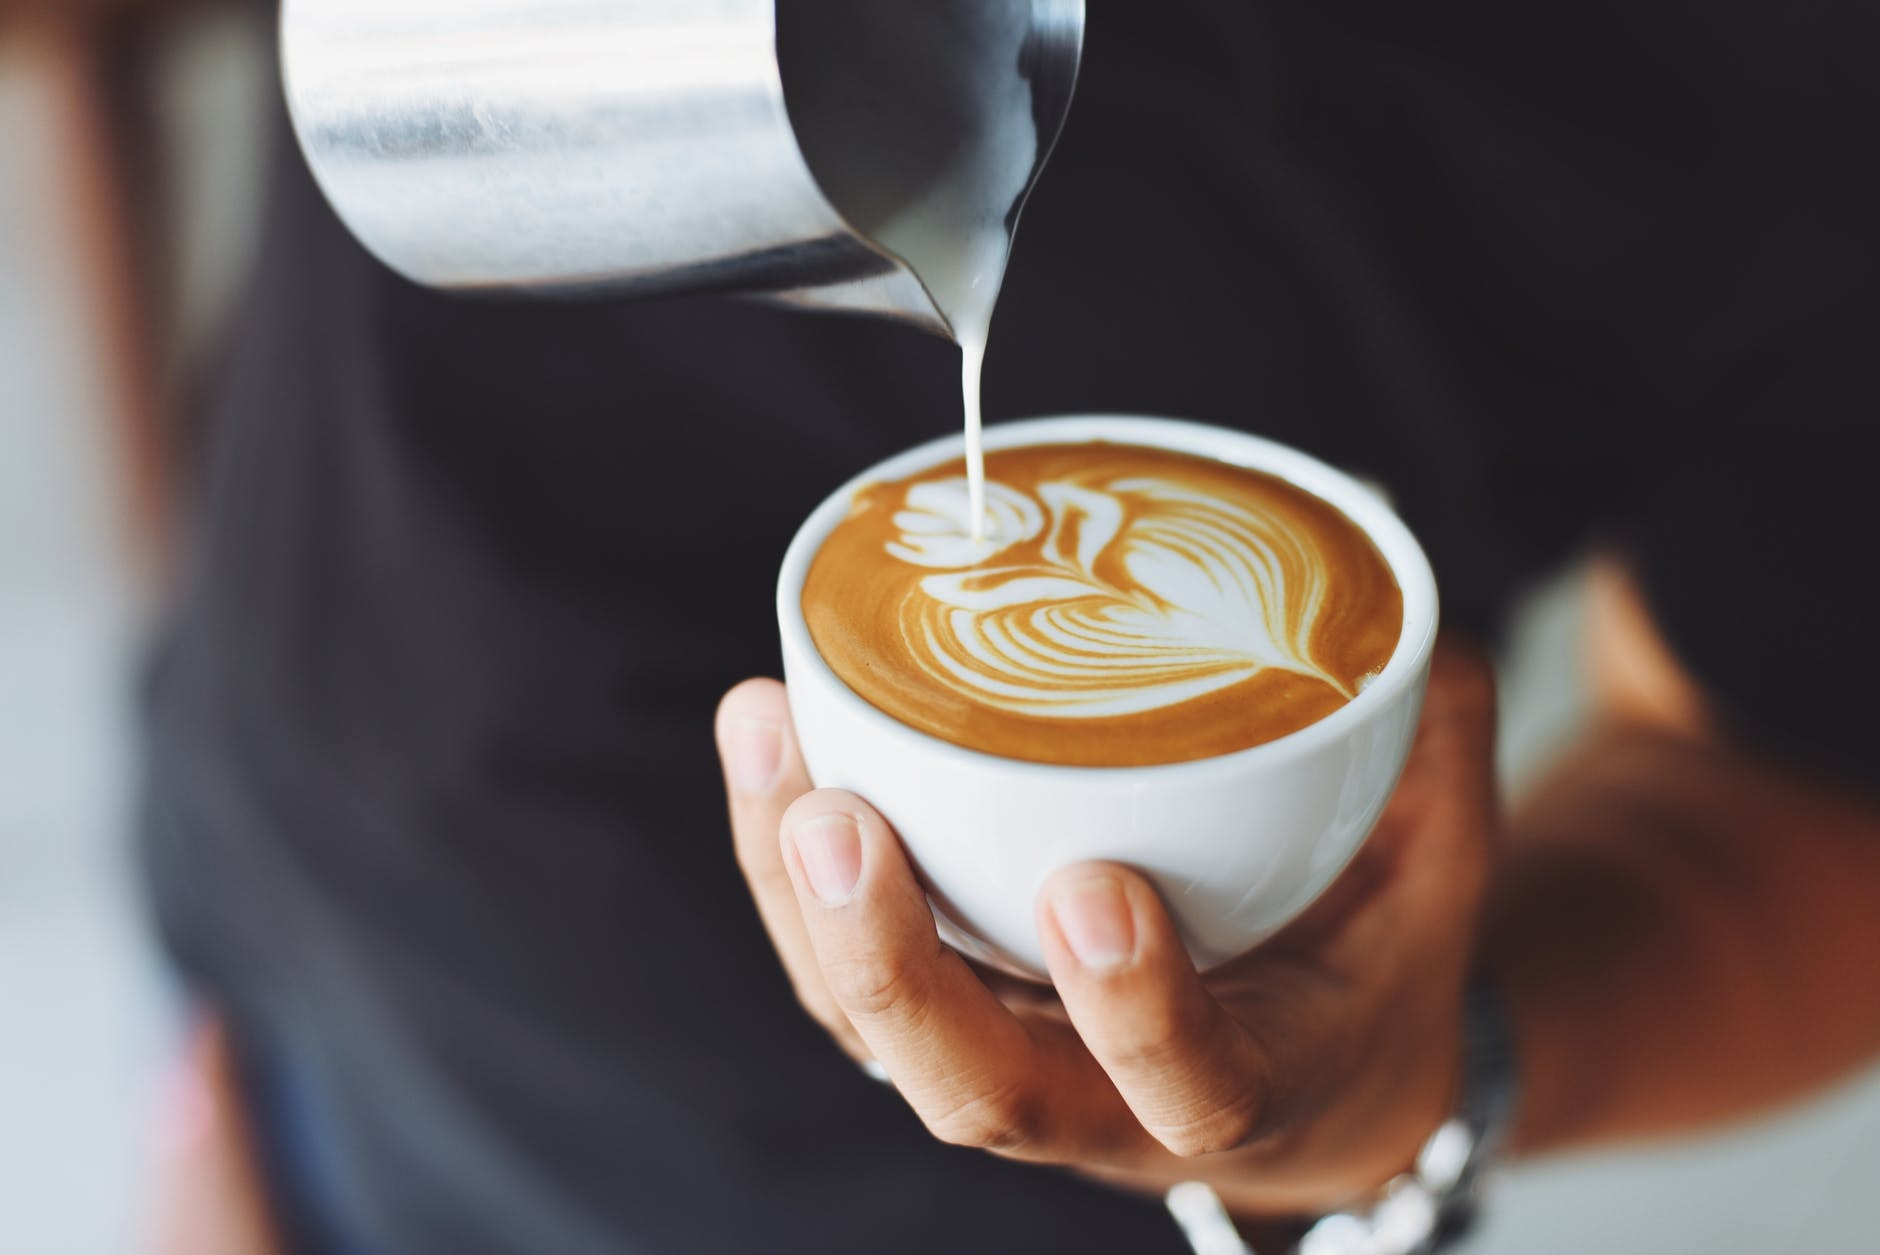 Man holding a coffee cup while making latte art